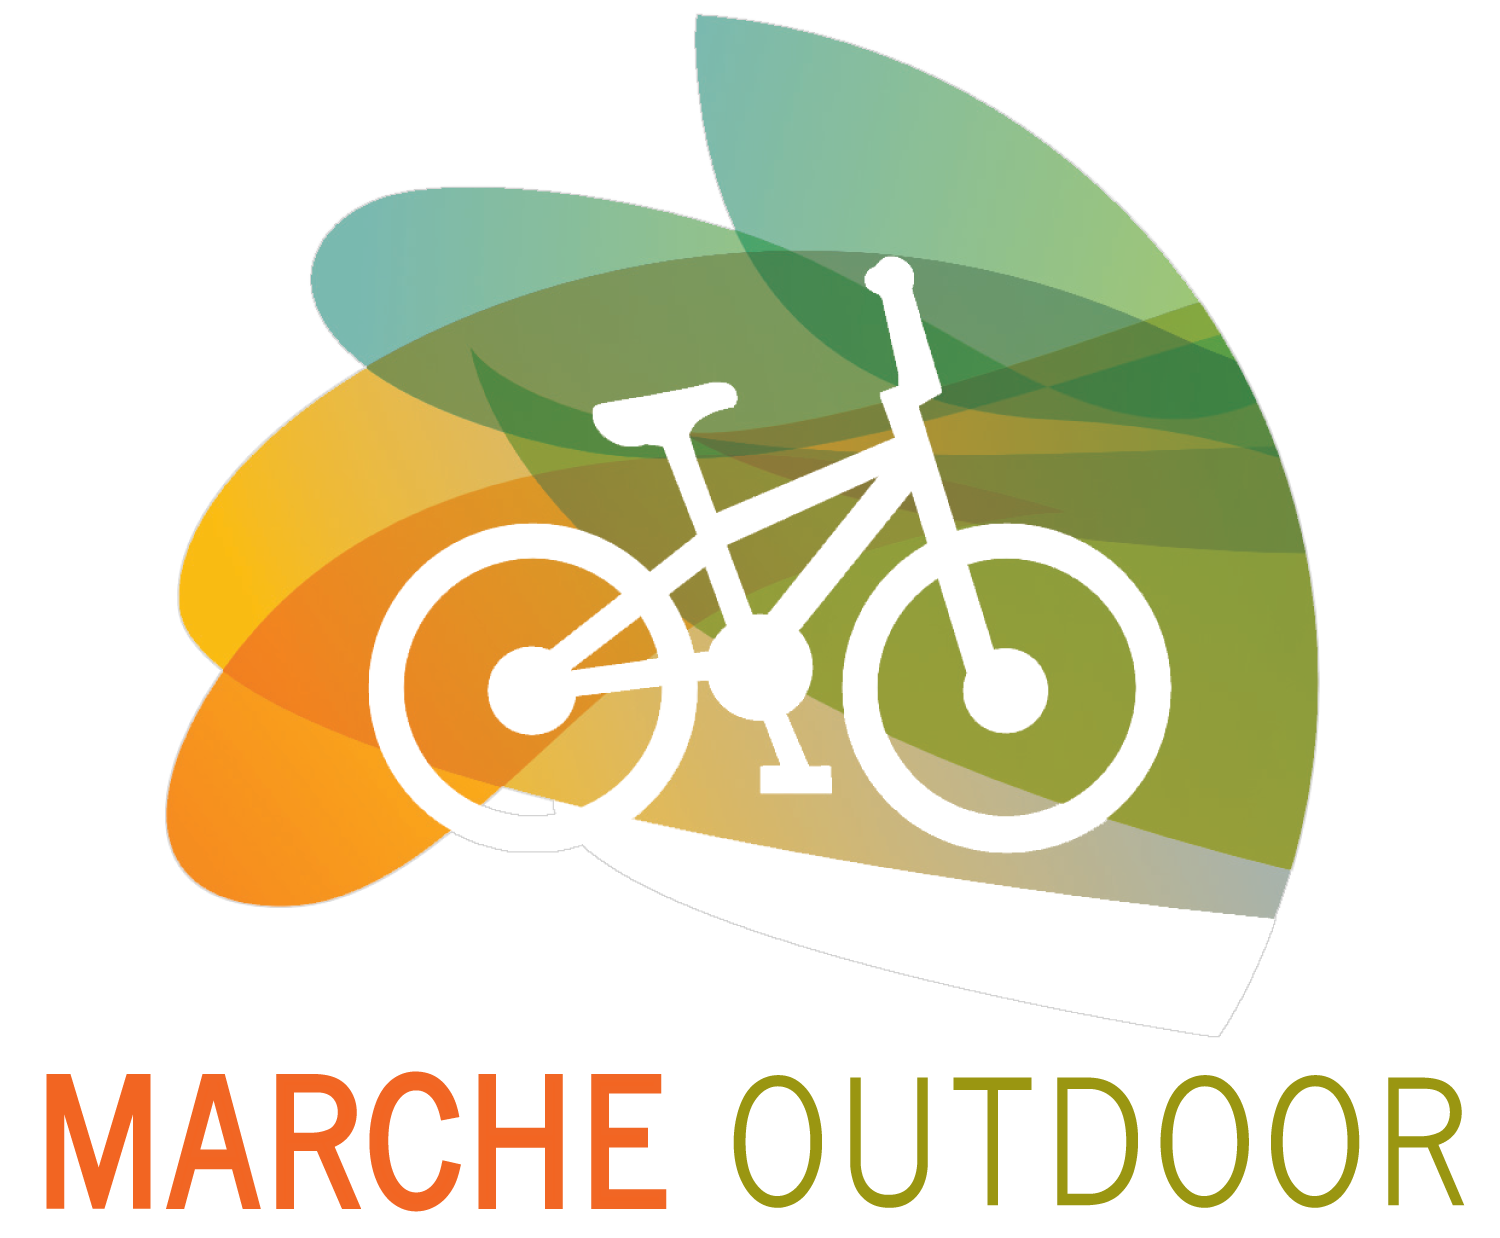 partner tourists for future outdoor experience marche